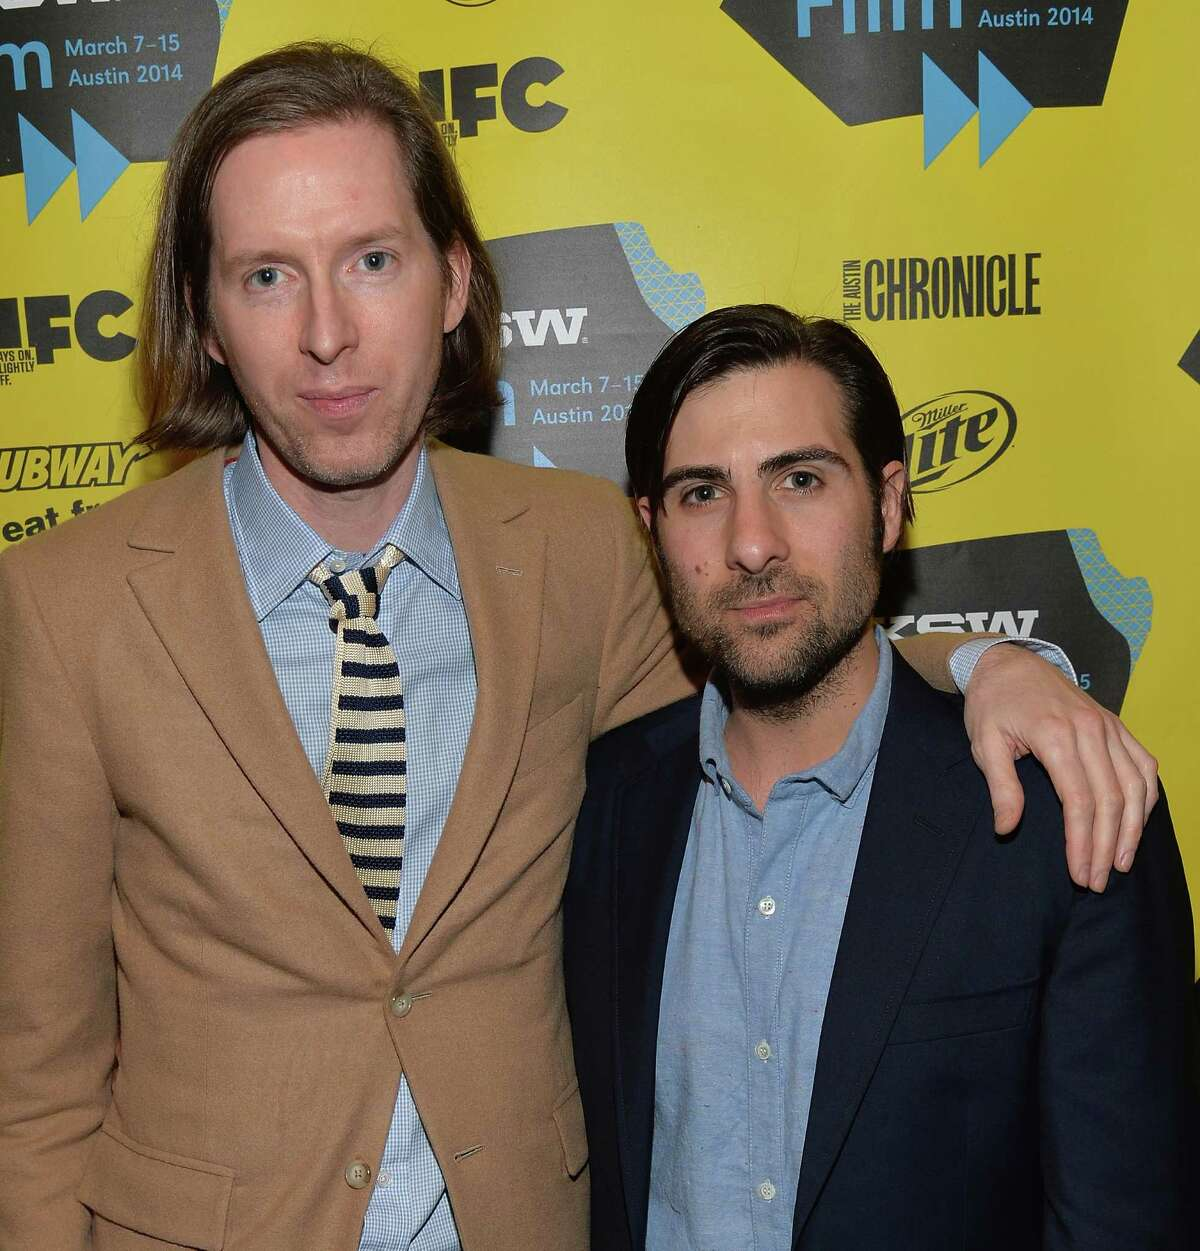 Director Wes Anderson, who helmed movies such as